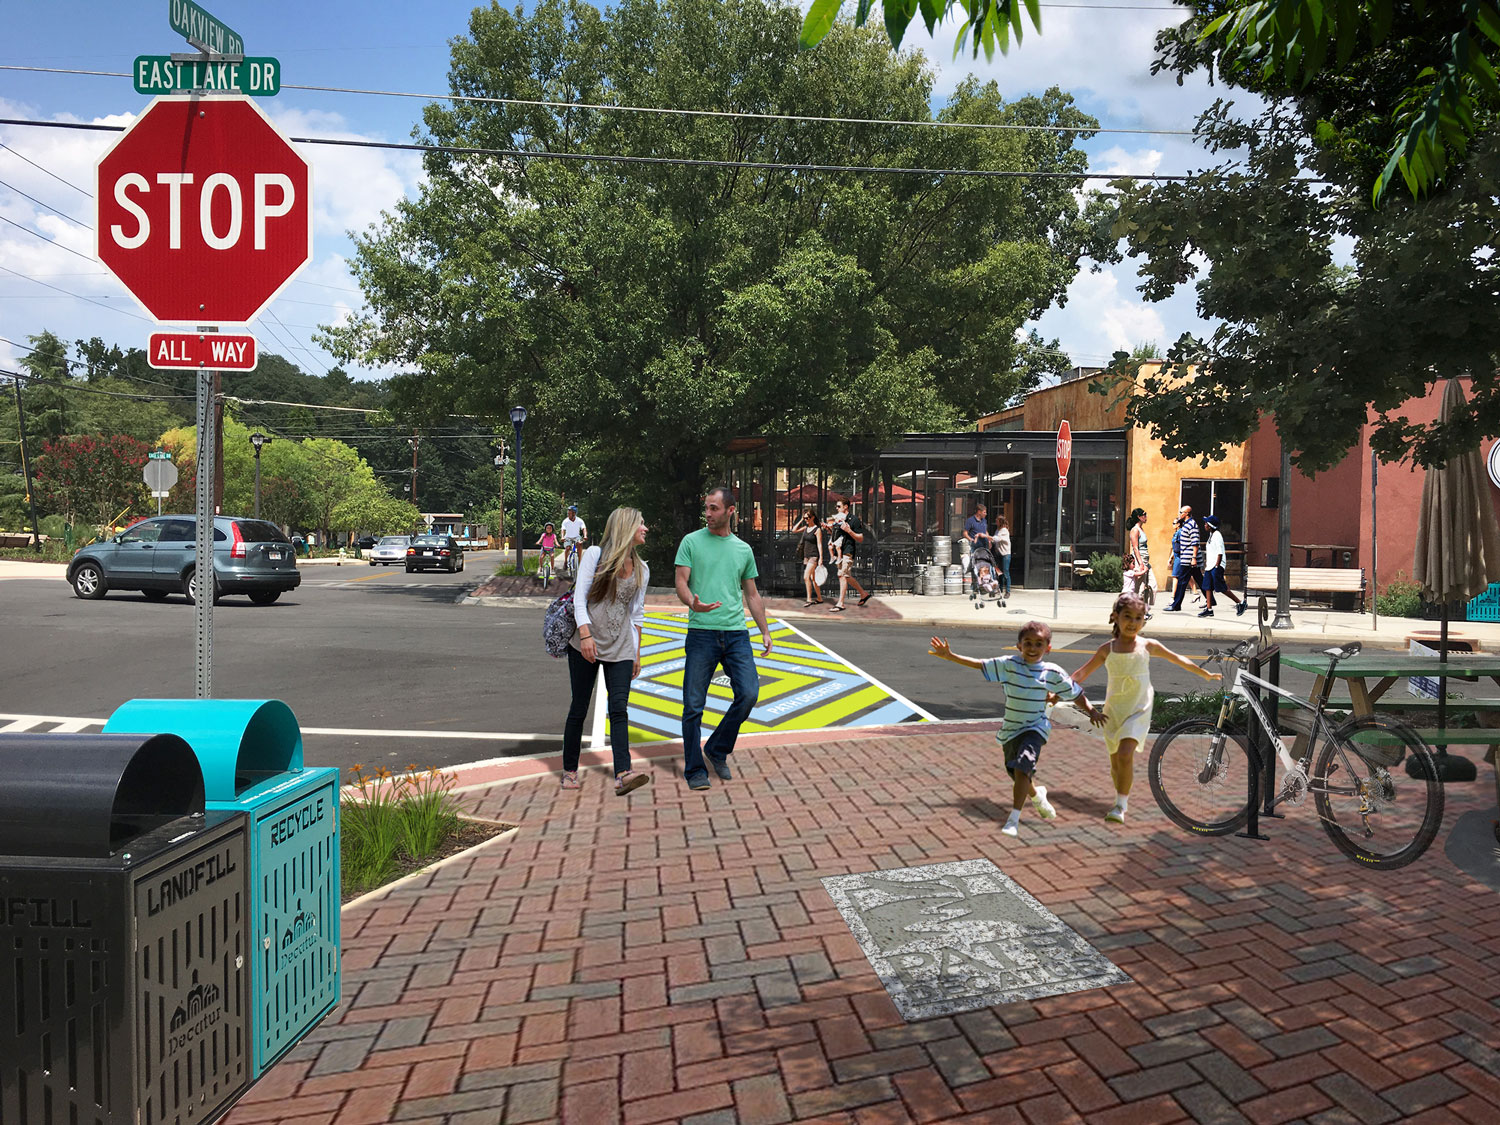 Proposed crossing of East Lake Drive with custom crosswalk and enhanced pedestrian mixing zones with improved pavers.